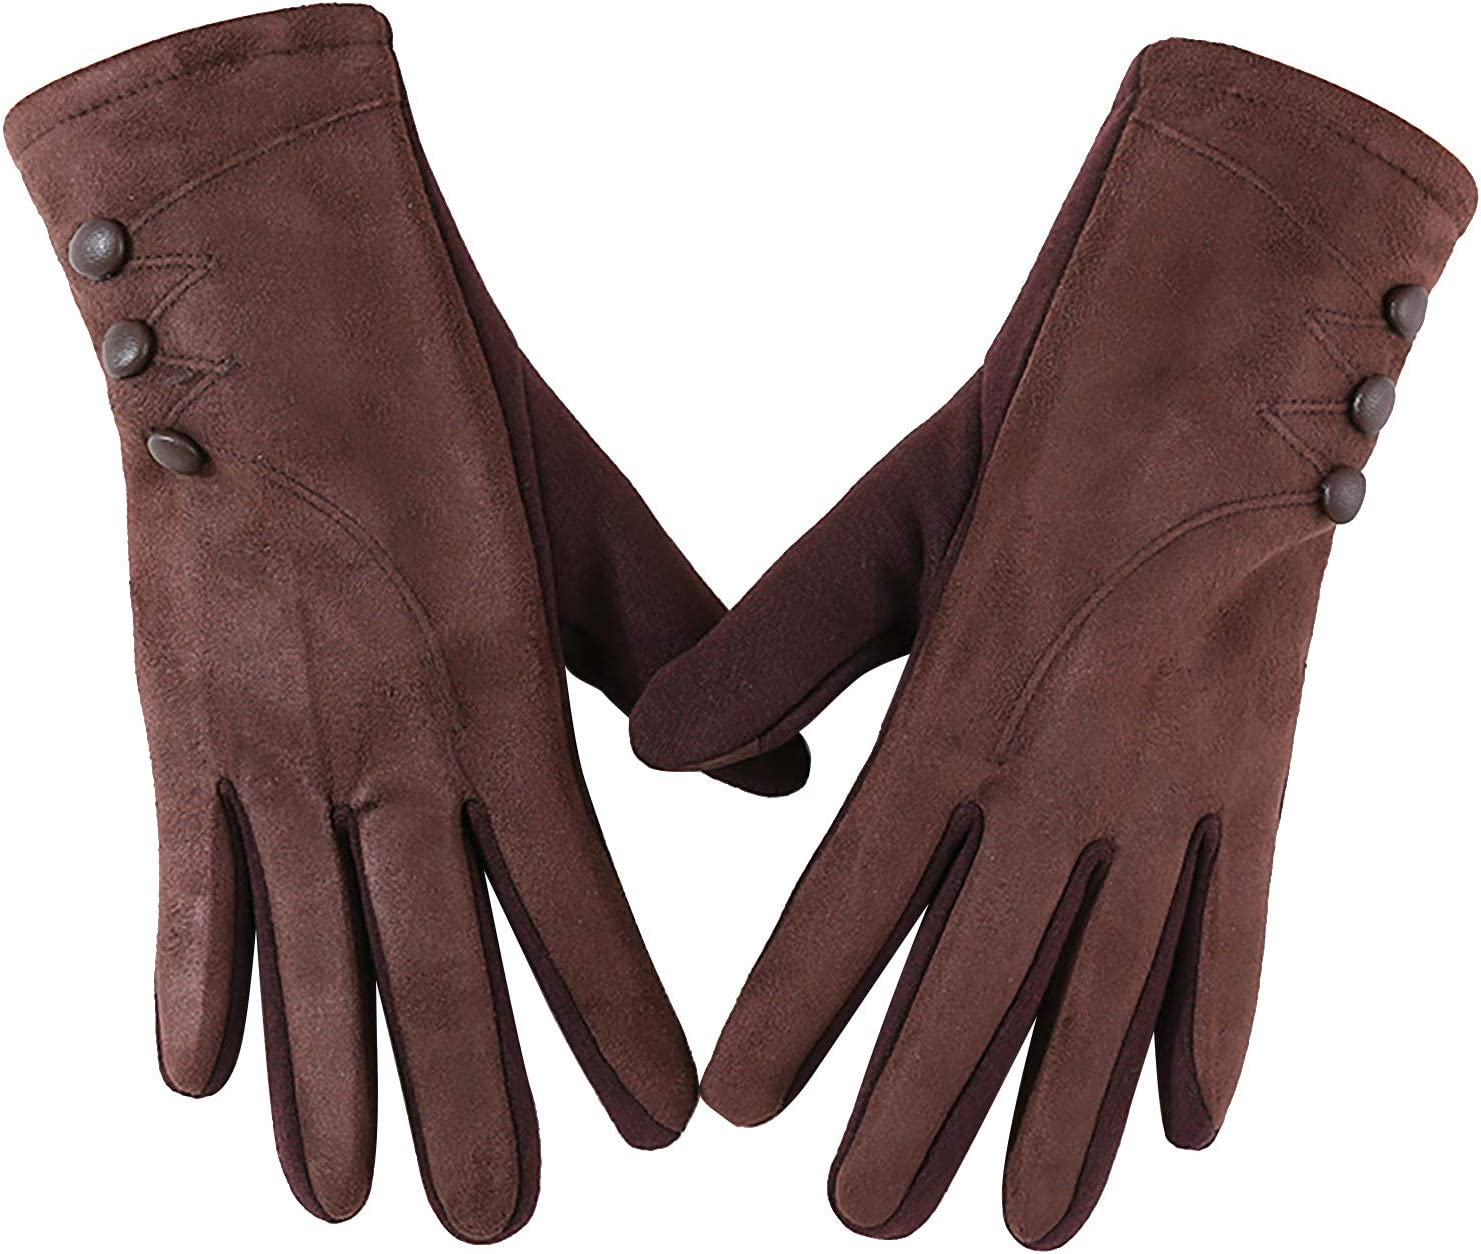 Womens Fleece Suede Touch Screen Warm Gloves Fashion Button Decorated Cycling Gloves Winter Outdoor Sport Mittens